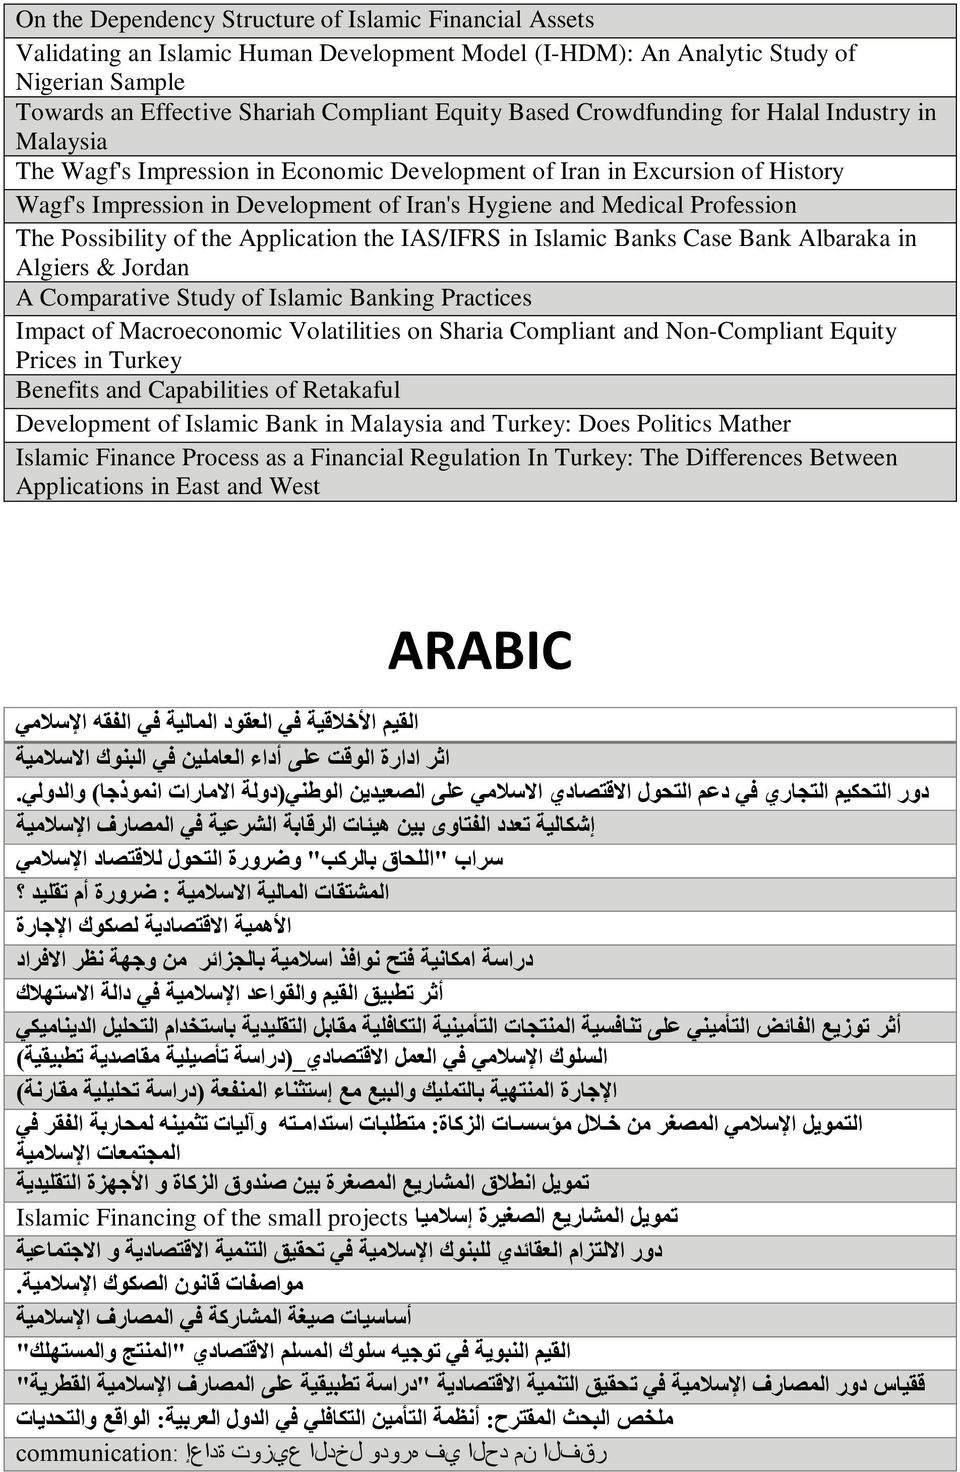 Possibility of the Application the IAS/IFRS in Islamic Banks Case Bank Albaraka in Algiers & Jordan A Comparative Study of Islamic Banking Practices Impact of Macroeconomic Volatilities on Sharia